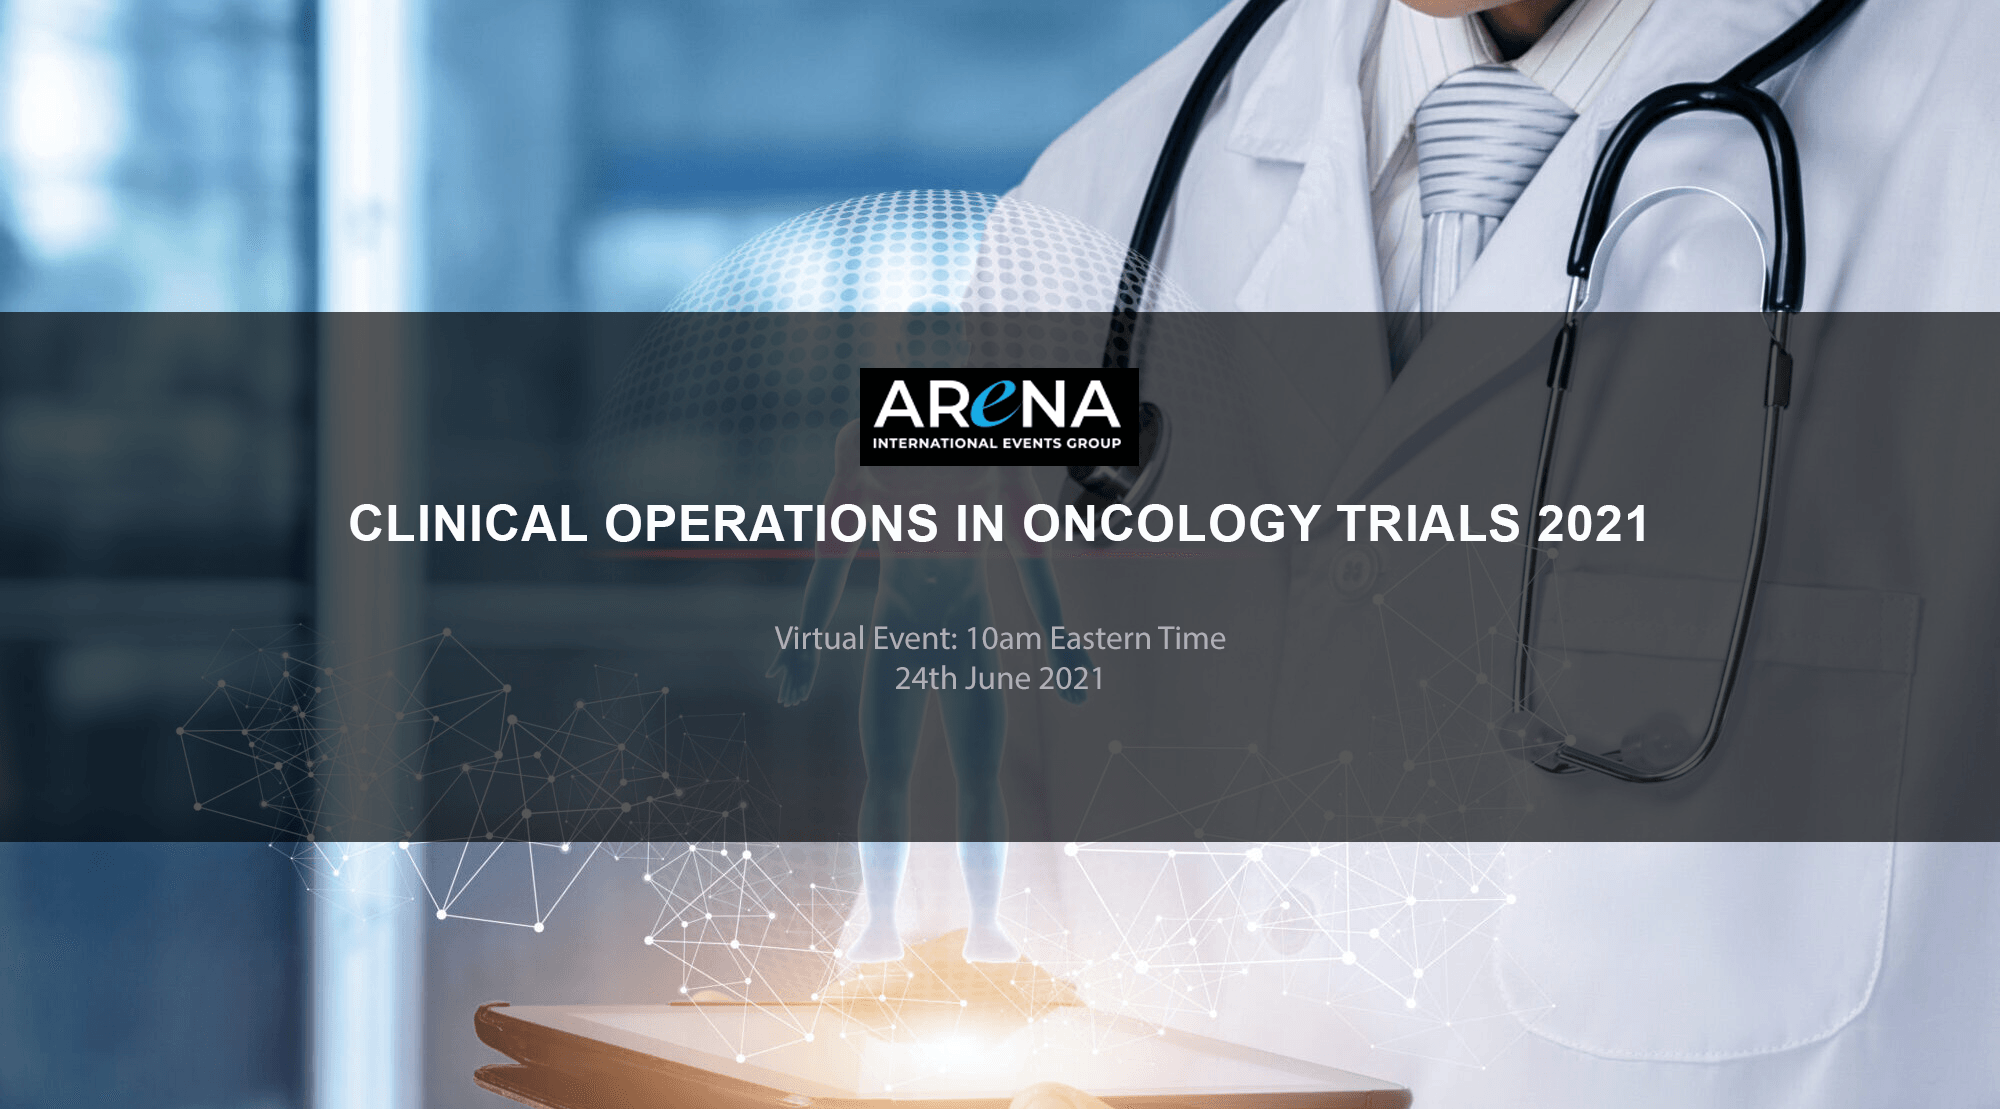 CLINICAL OPERATIONS IN ONCOLOGY TRIALS 2021